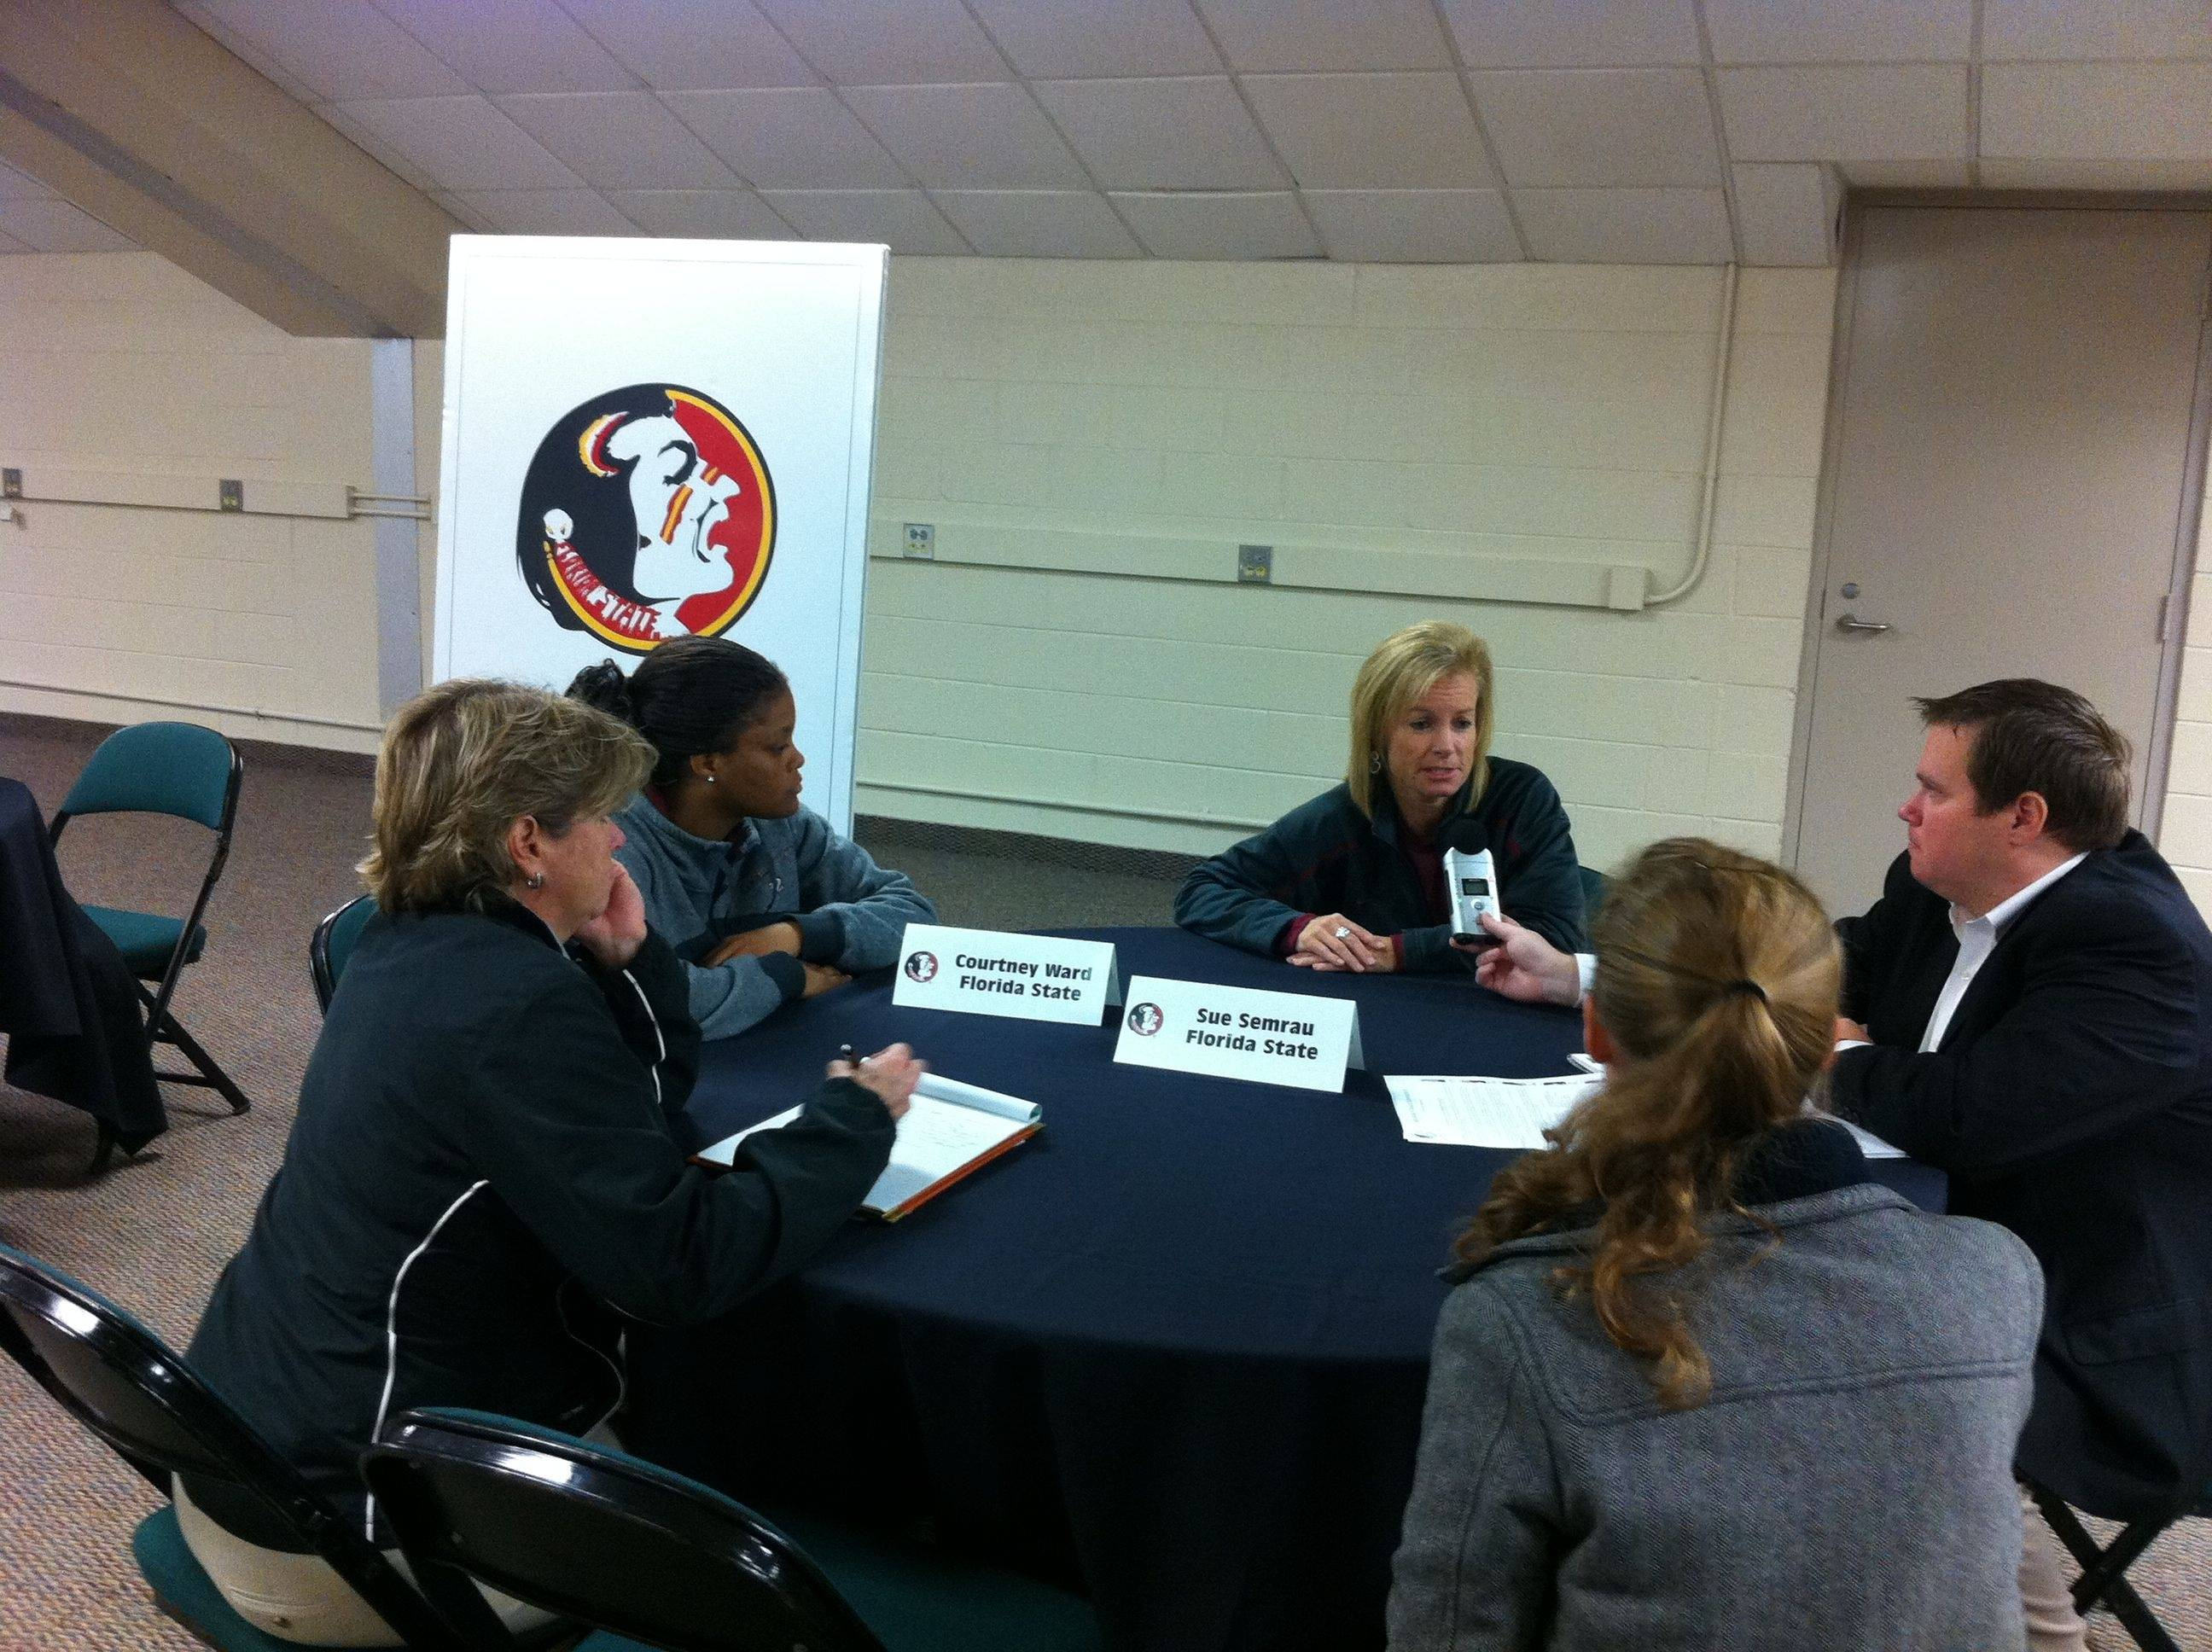 Head coach Sue Semrau and point guard Courtney Ward sat down and spoke with many media members over the course of an hour.